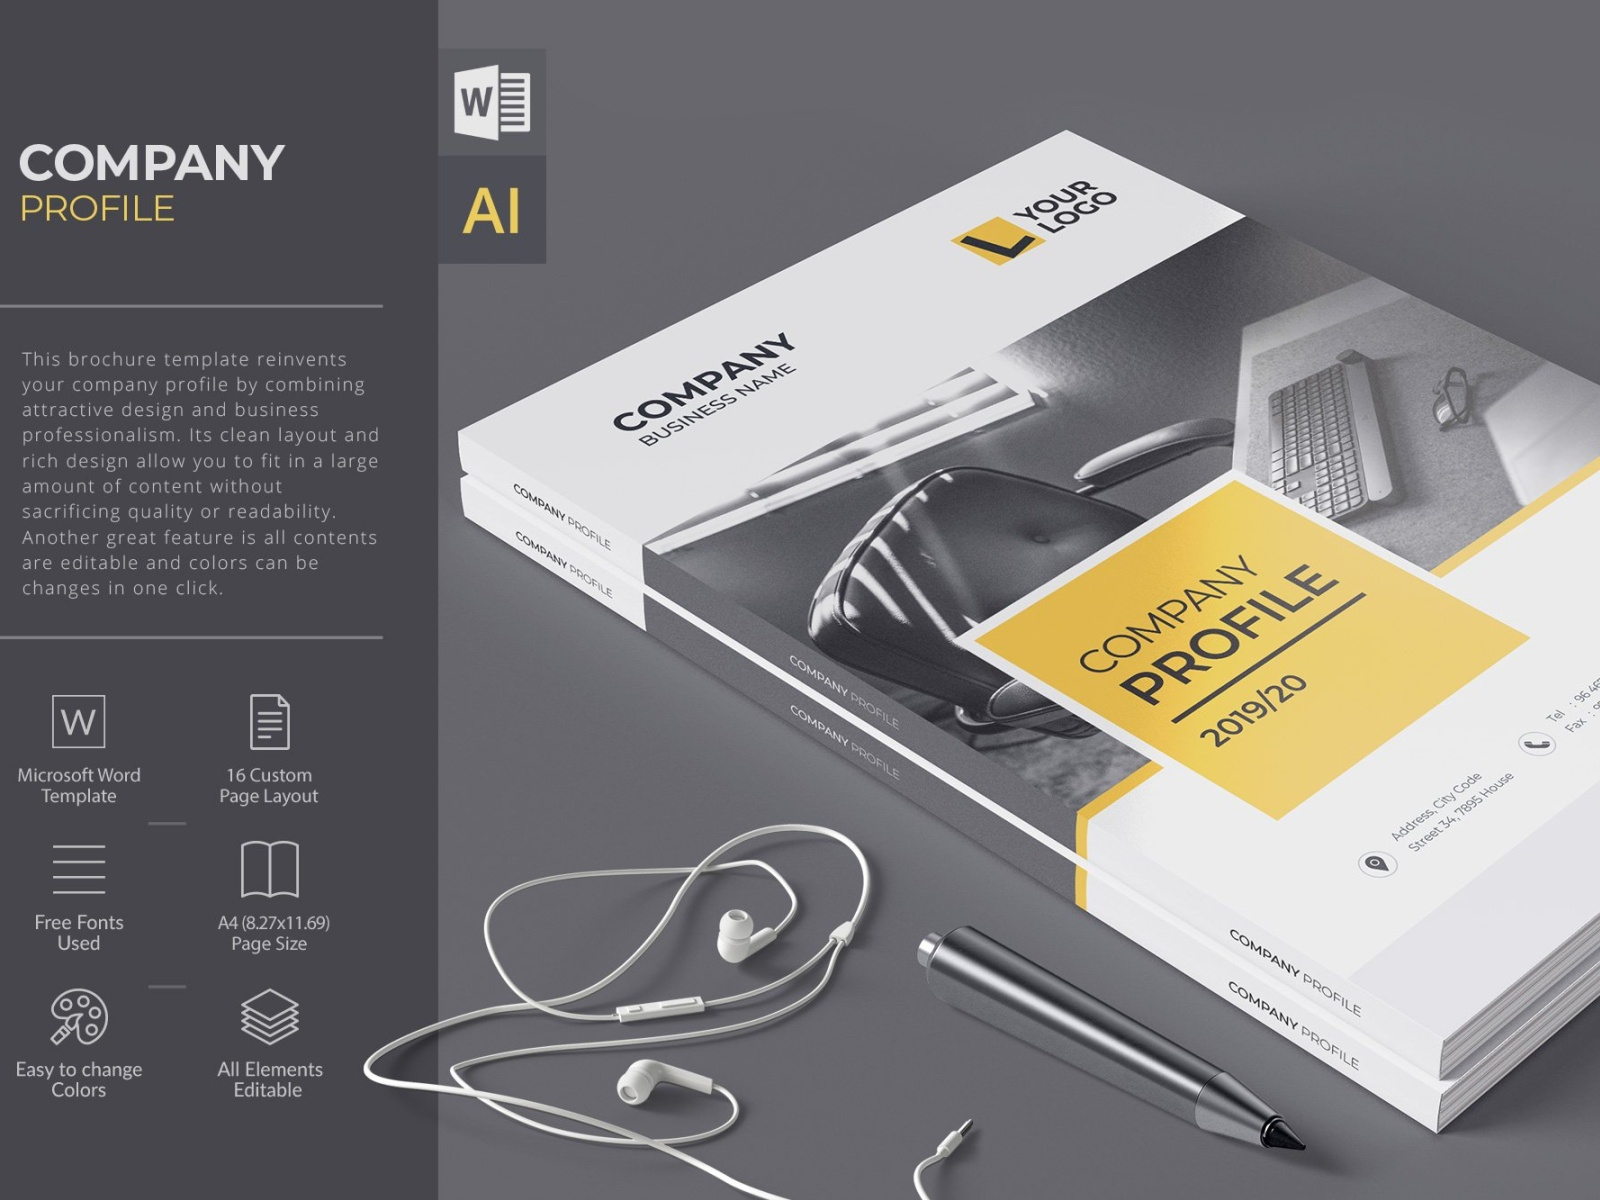 Company Profile Word Template By Brochure Design On Dribbble,How Much Does It Cost To Design A Website